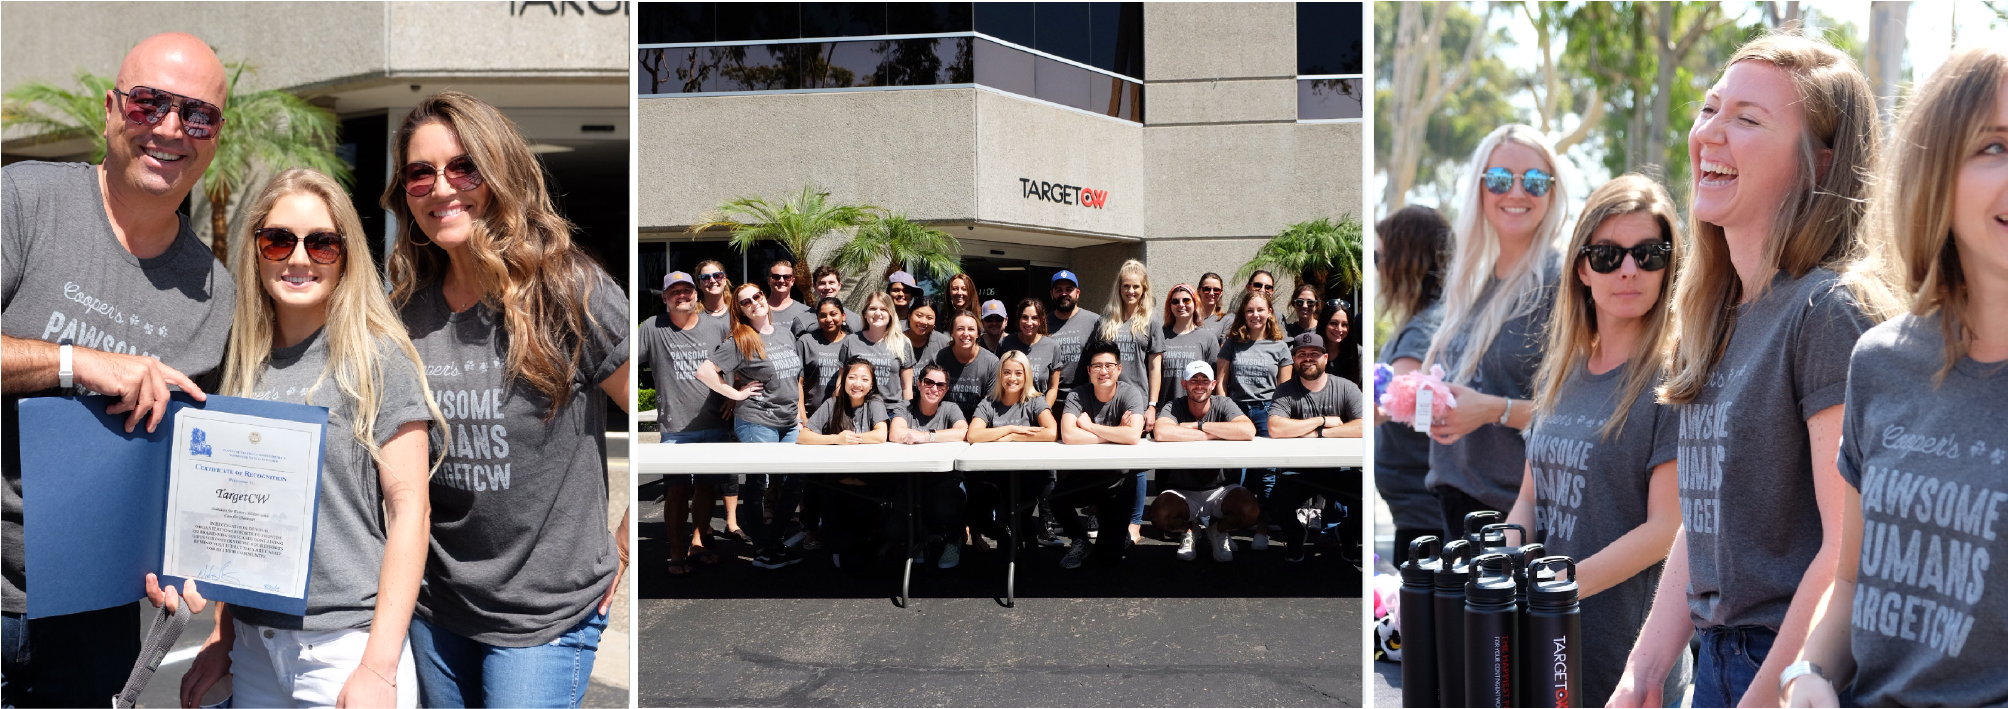 Company of the Year, Doing Big Things: TargetCW Wins Stevie® Award for Company of the Year!